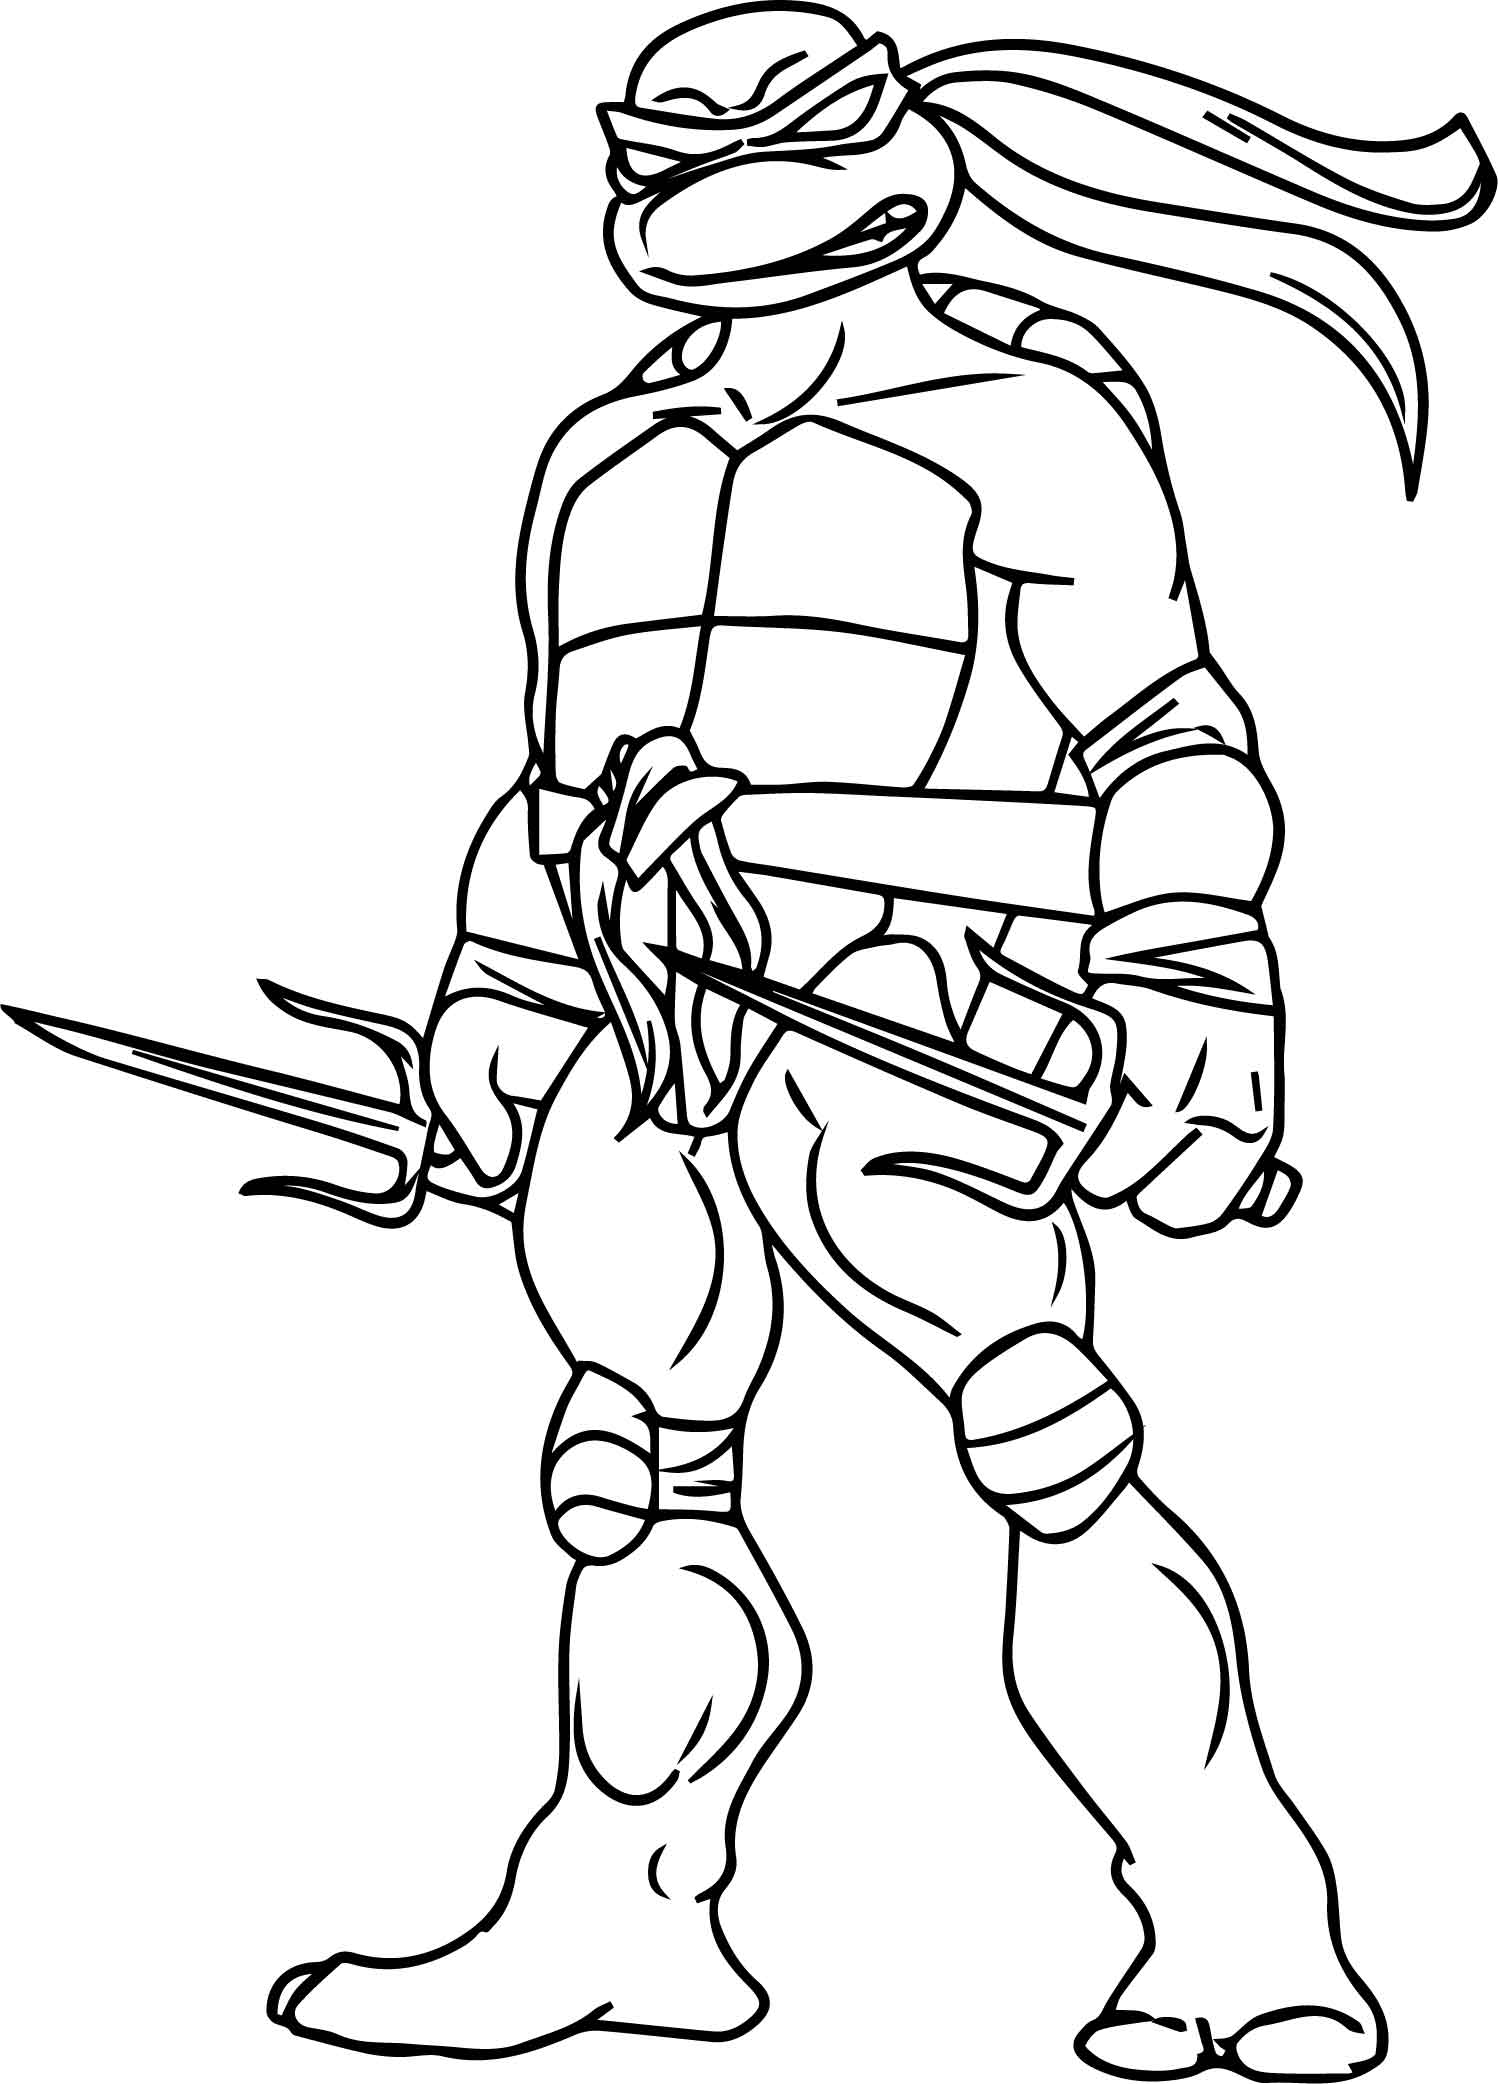 The Teenage Mutant Ninja Turtles Blade Coloring Page